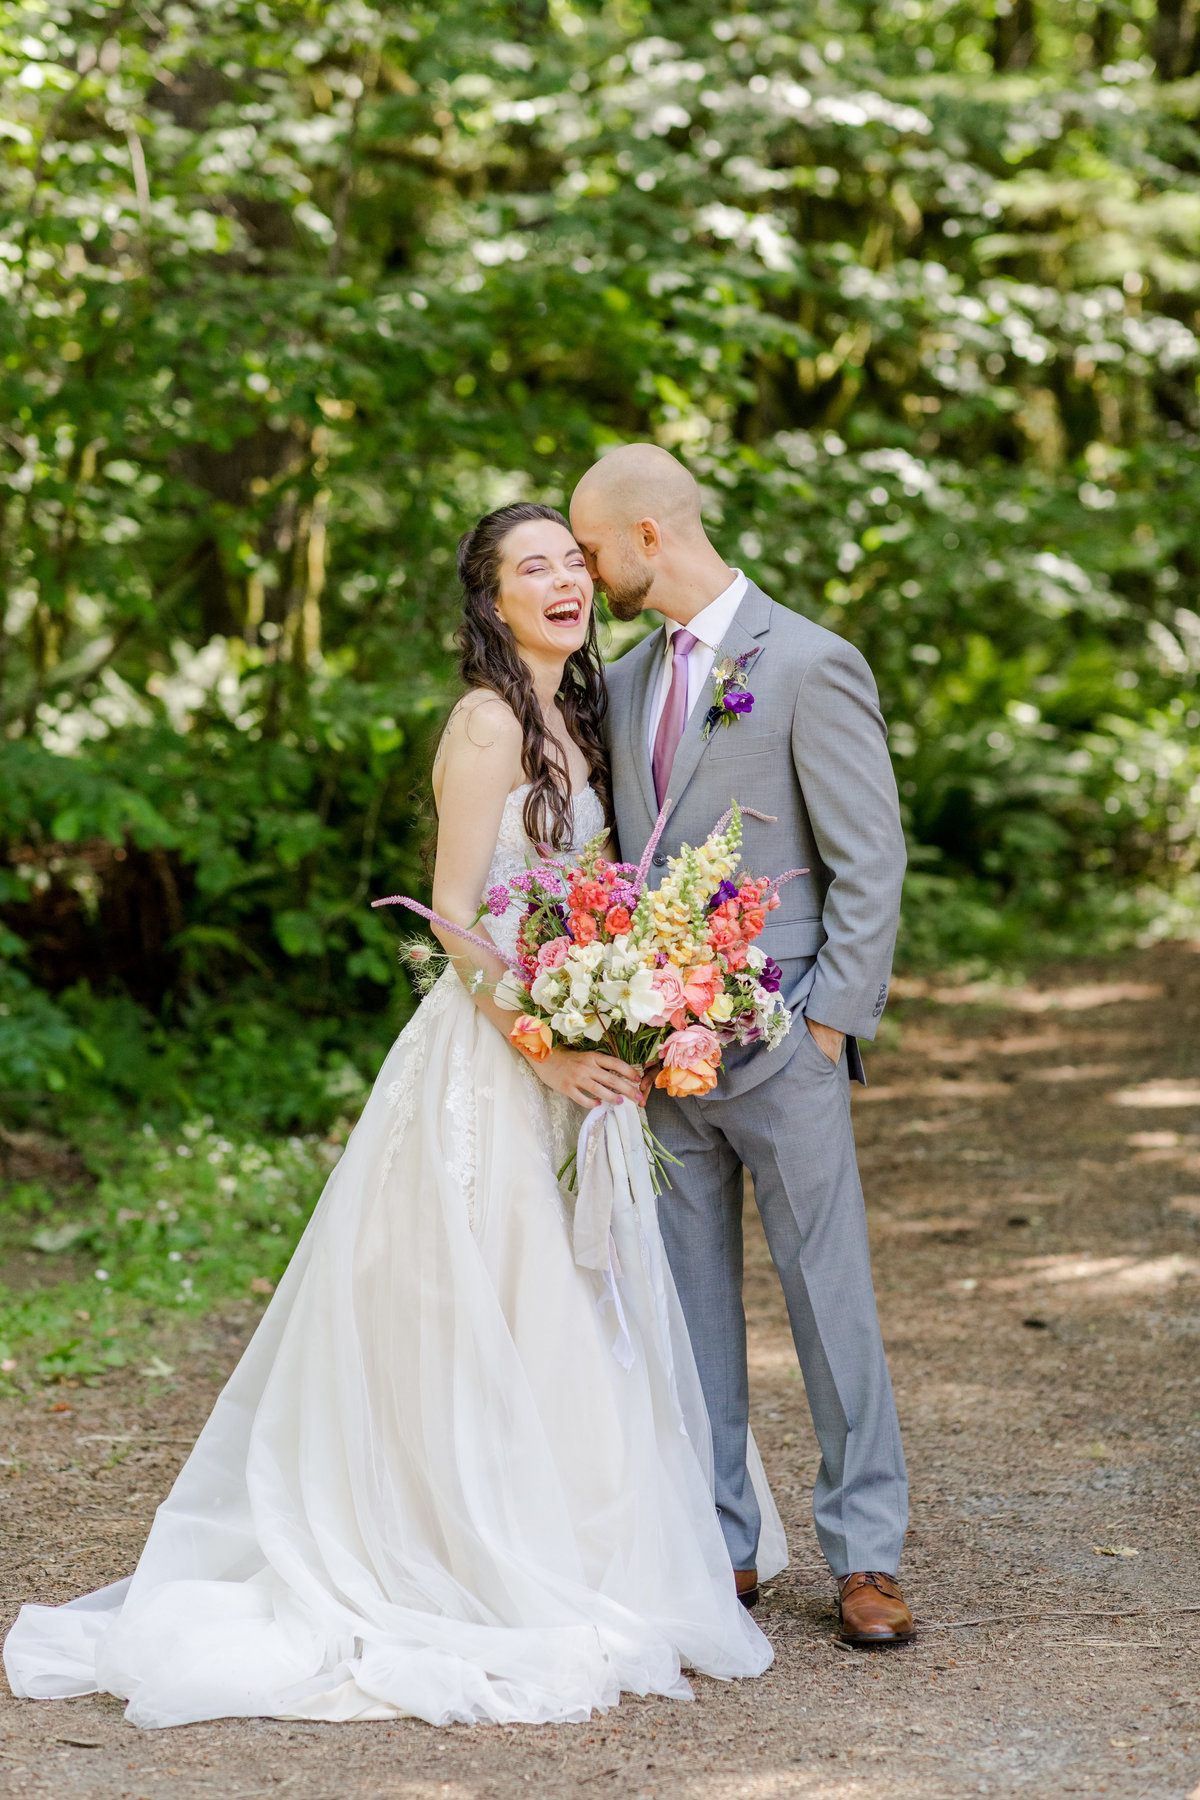 The Thyme Garden Wedding - Oregon Photographer-51